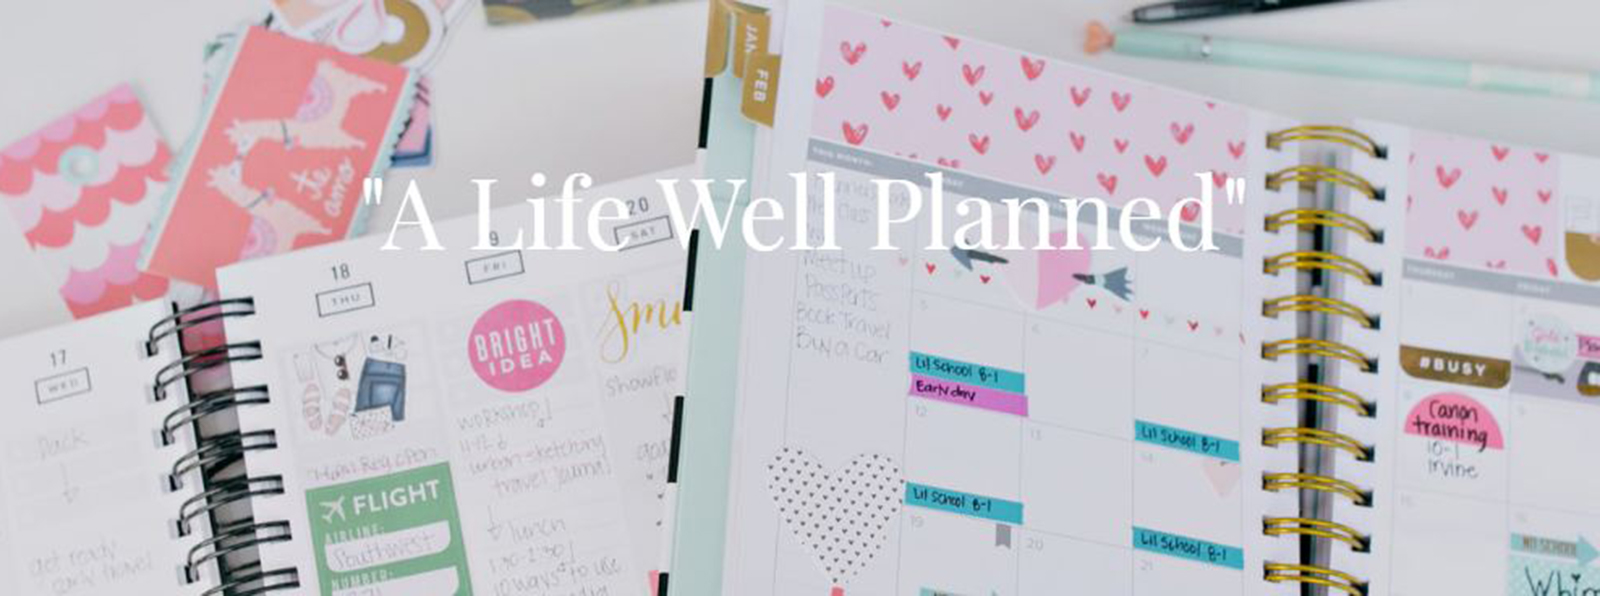 planners banner